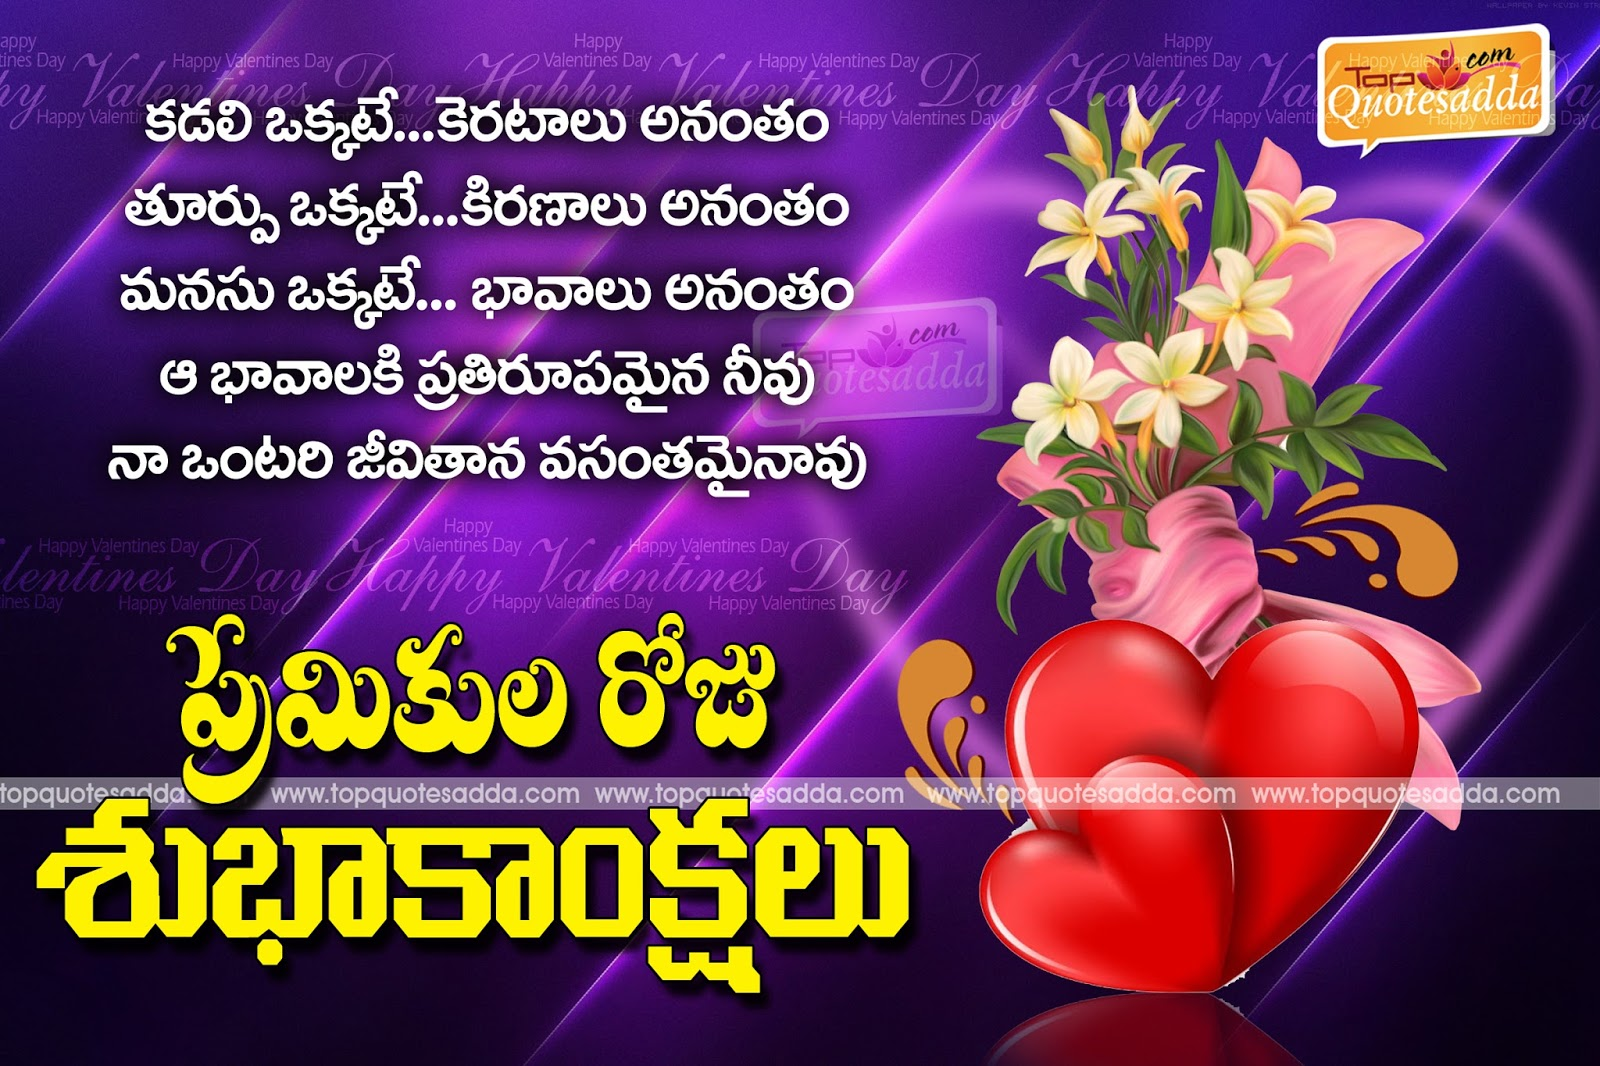 Happy Valentines Day Telugu Quotes And Sayings With Hd Love Images